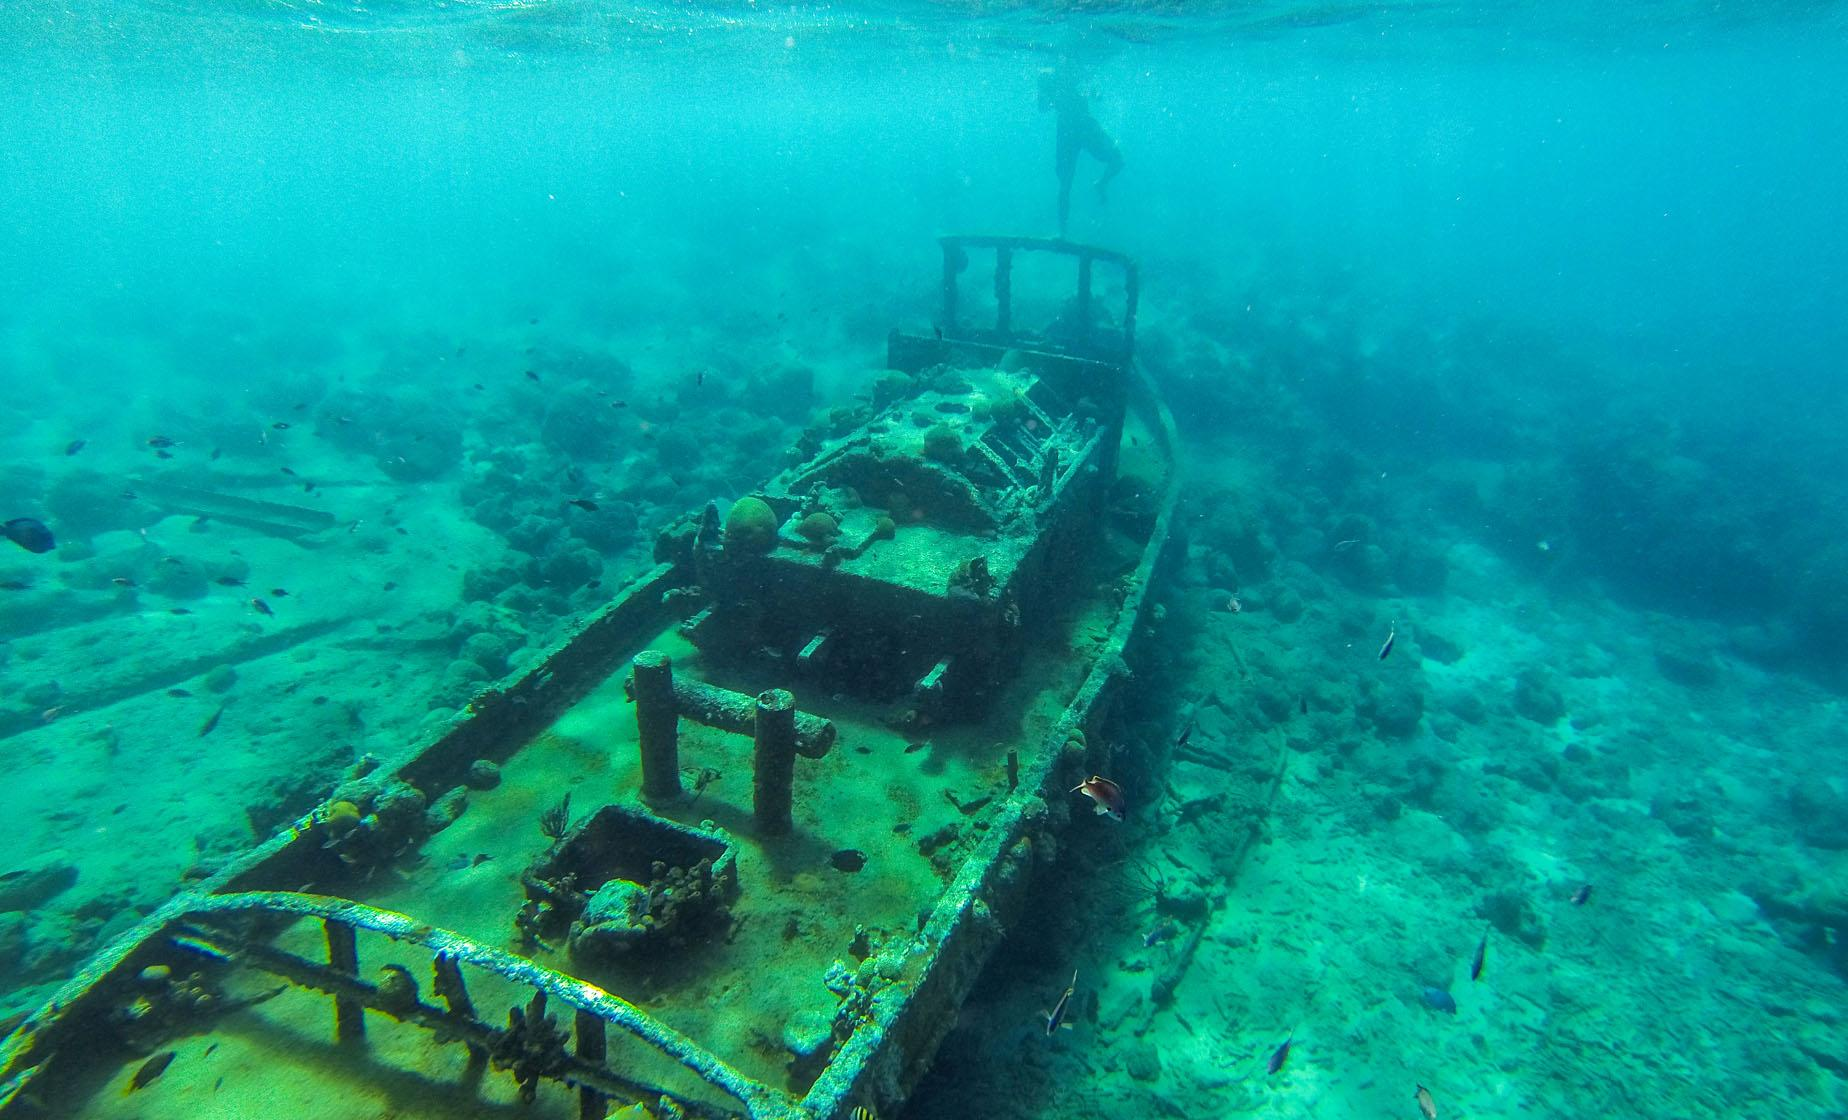 Aquatour Boat Tour and  Shipwreck Snorkeling in Curacao (Fort Beekenburg, Tafelberg, Caracas Bay)